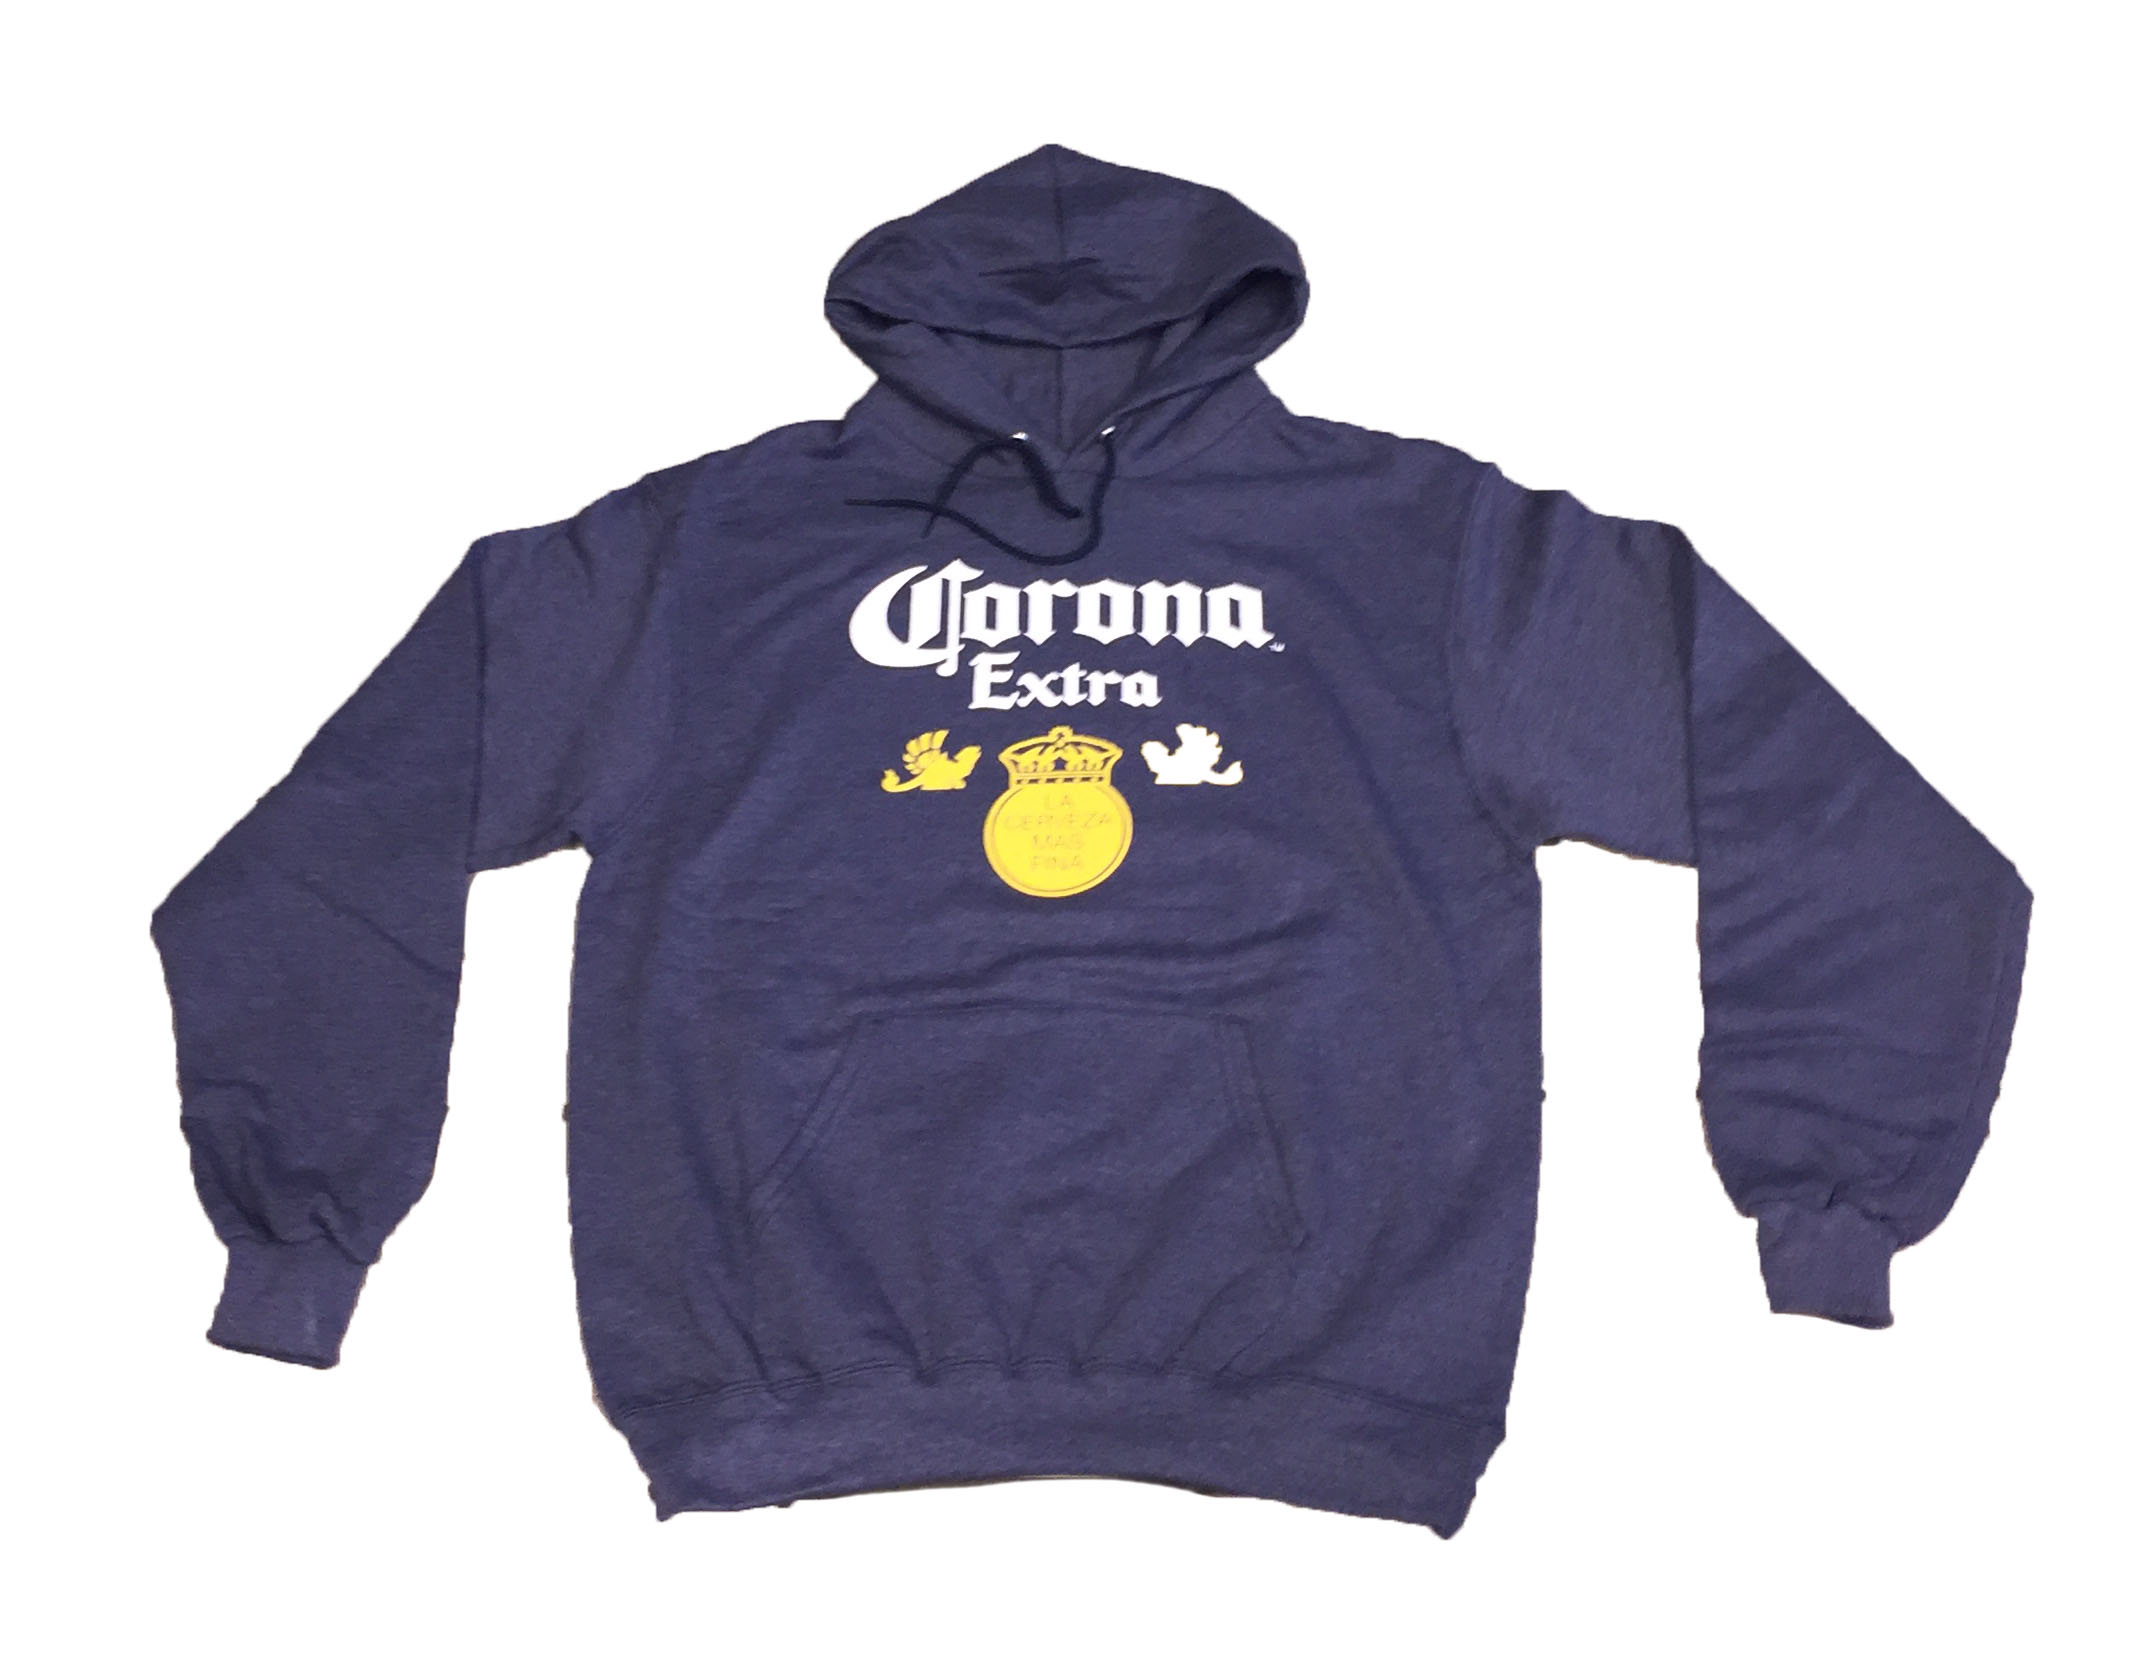 Corona Extra Navy Hoodie Sweatshirt The Beer Gear Store